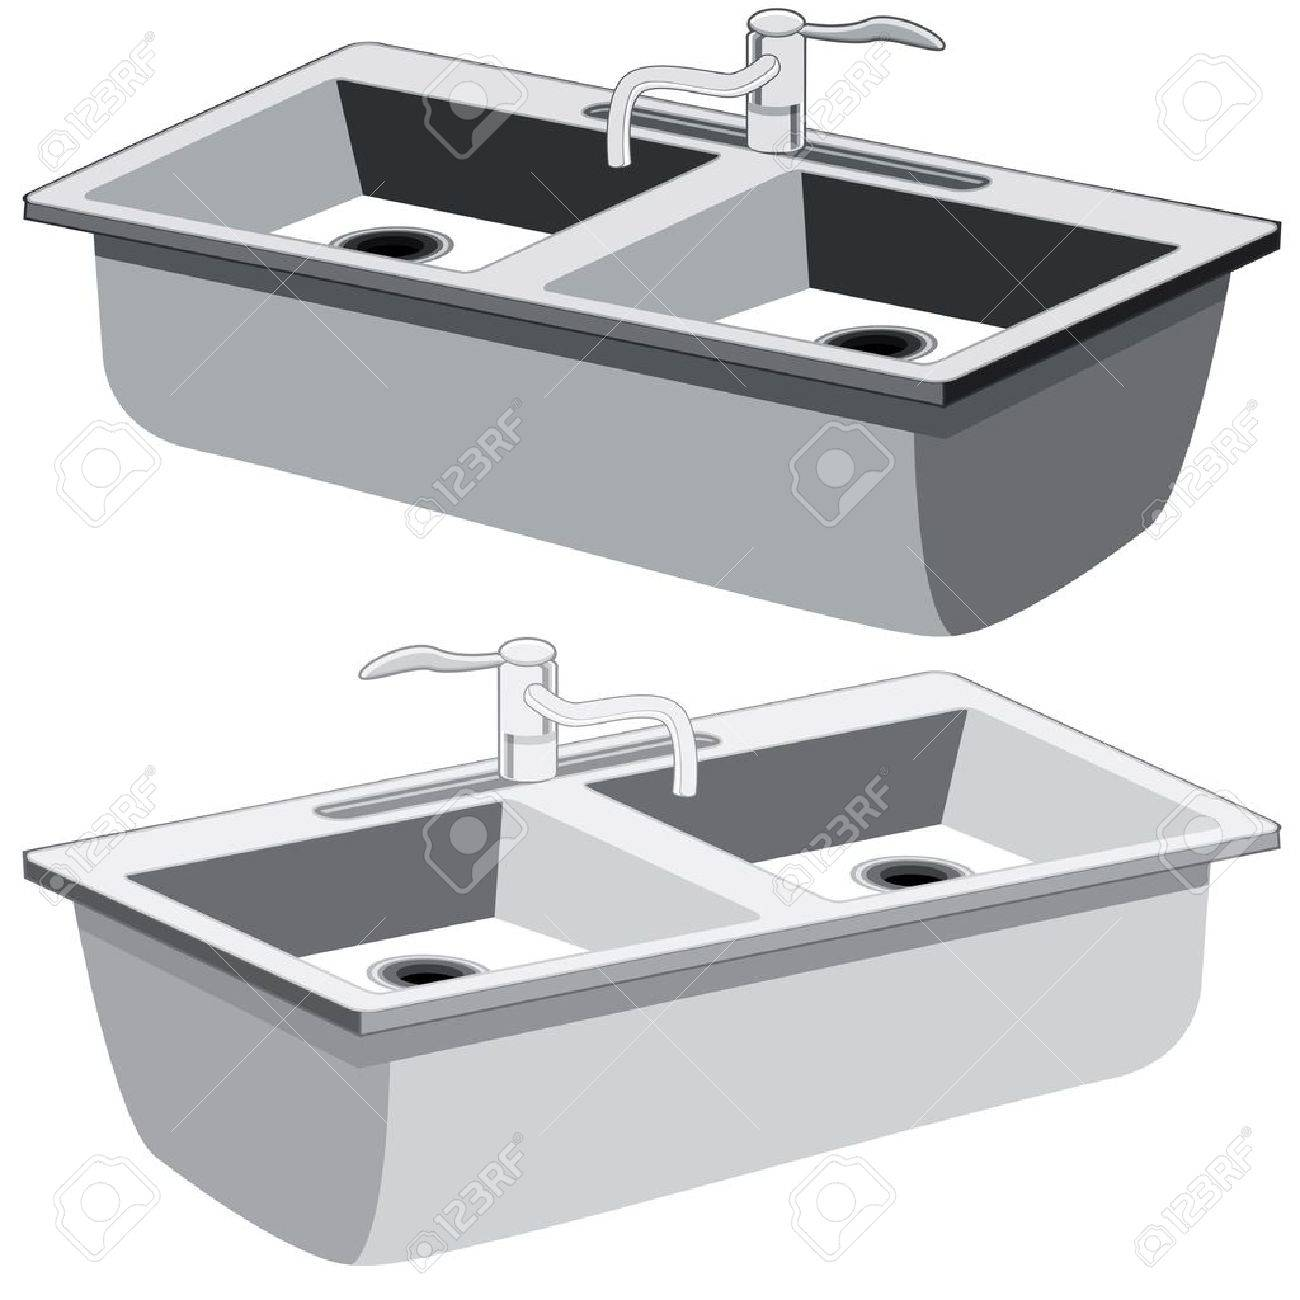 An image of a kitchen sink. Stock Vector - 17336173